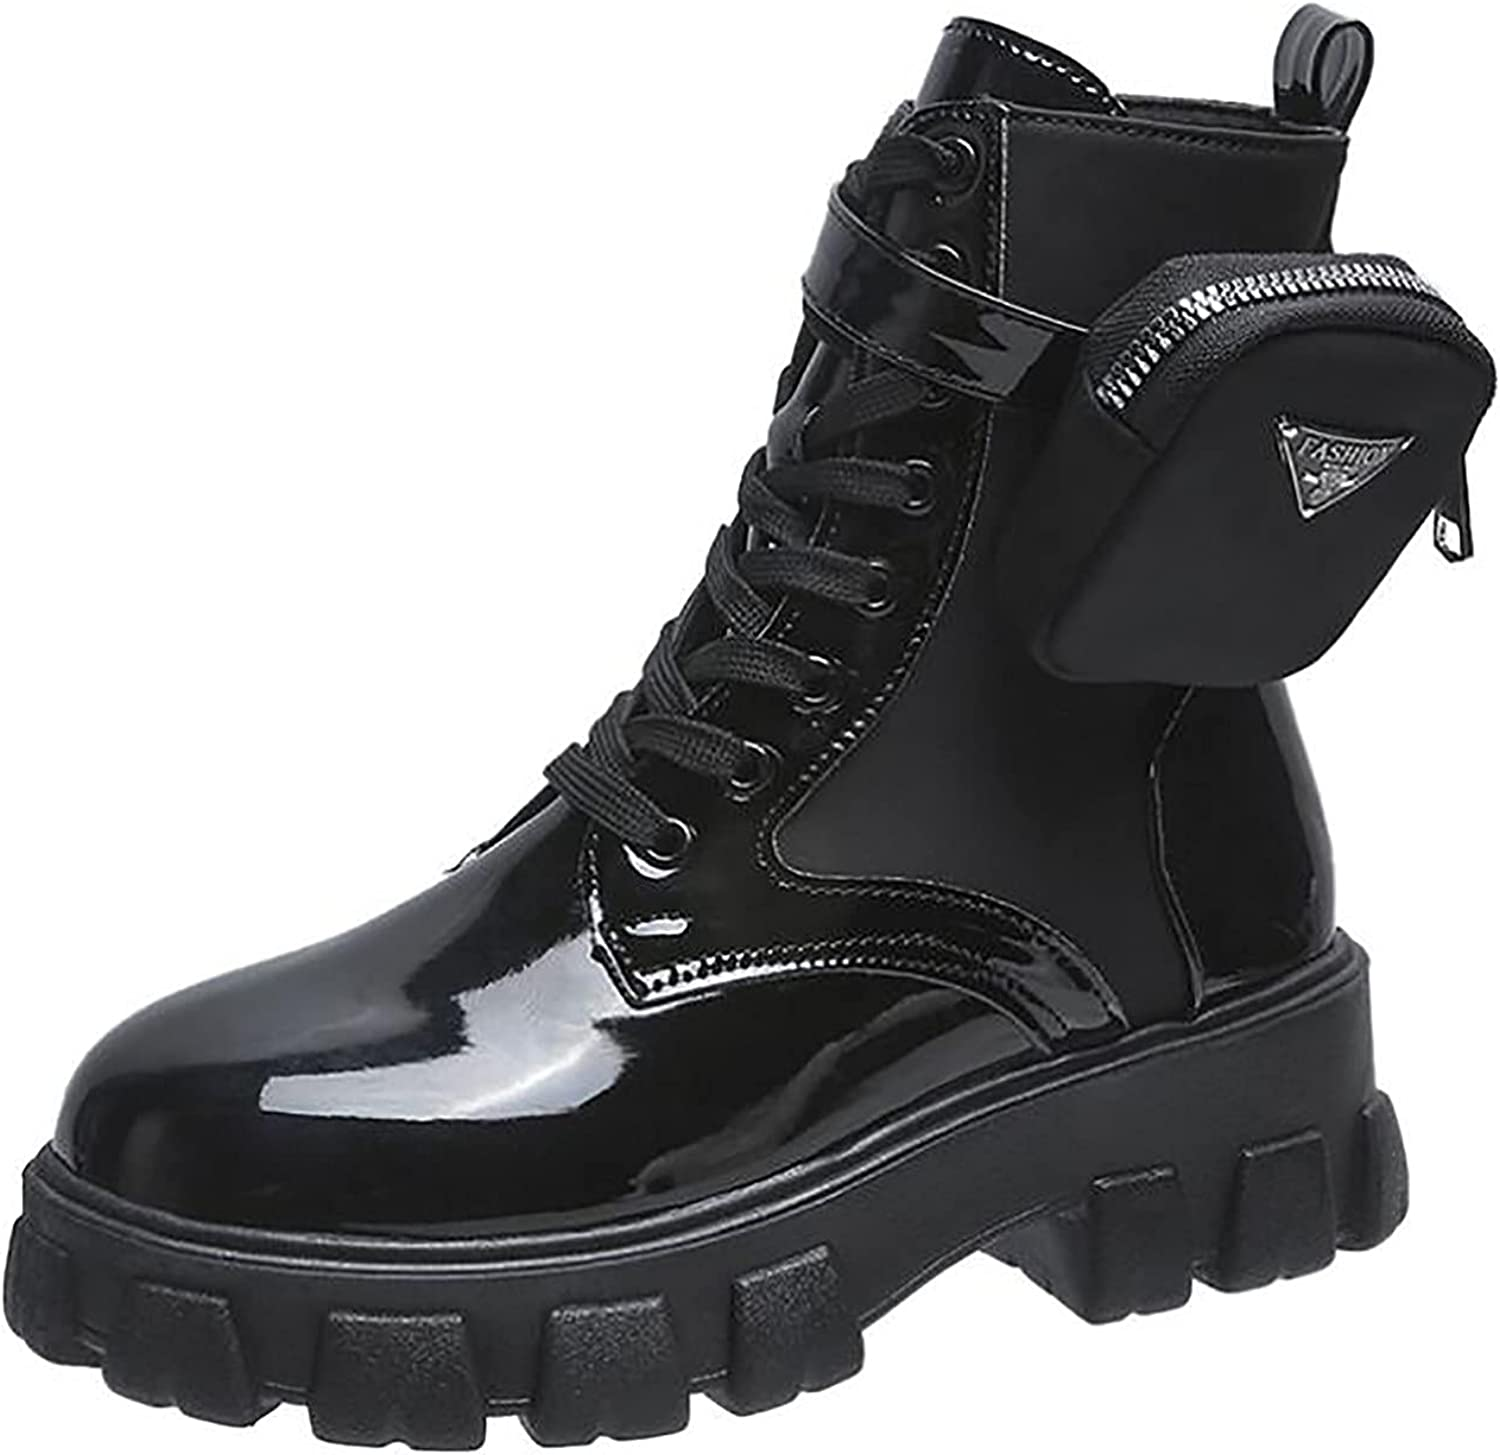 Boots for Women Medium Tube Round Head Solid Side Zipper Low Hee